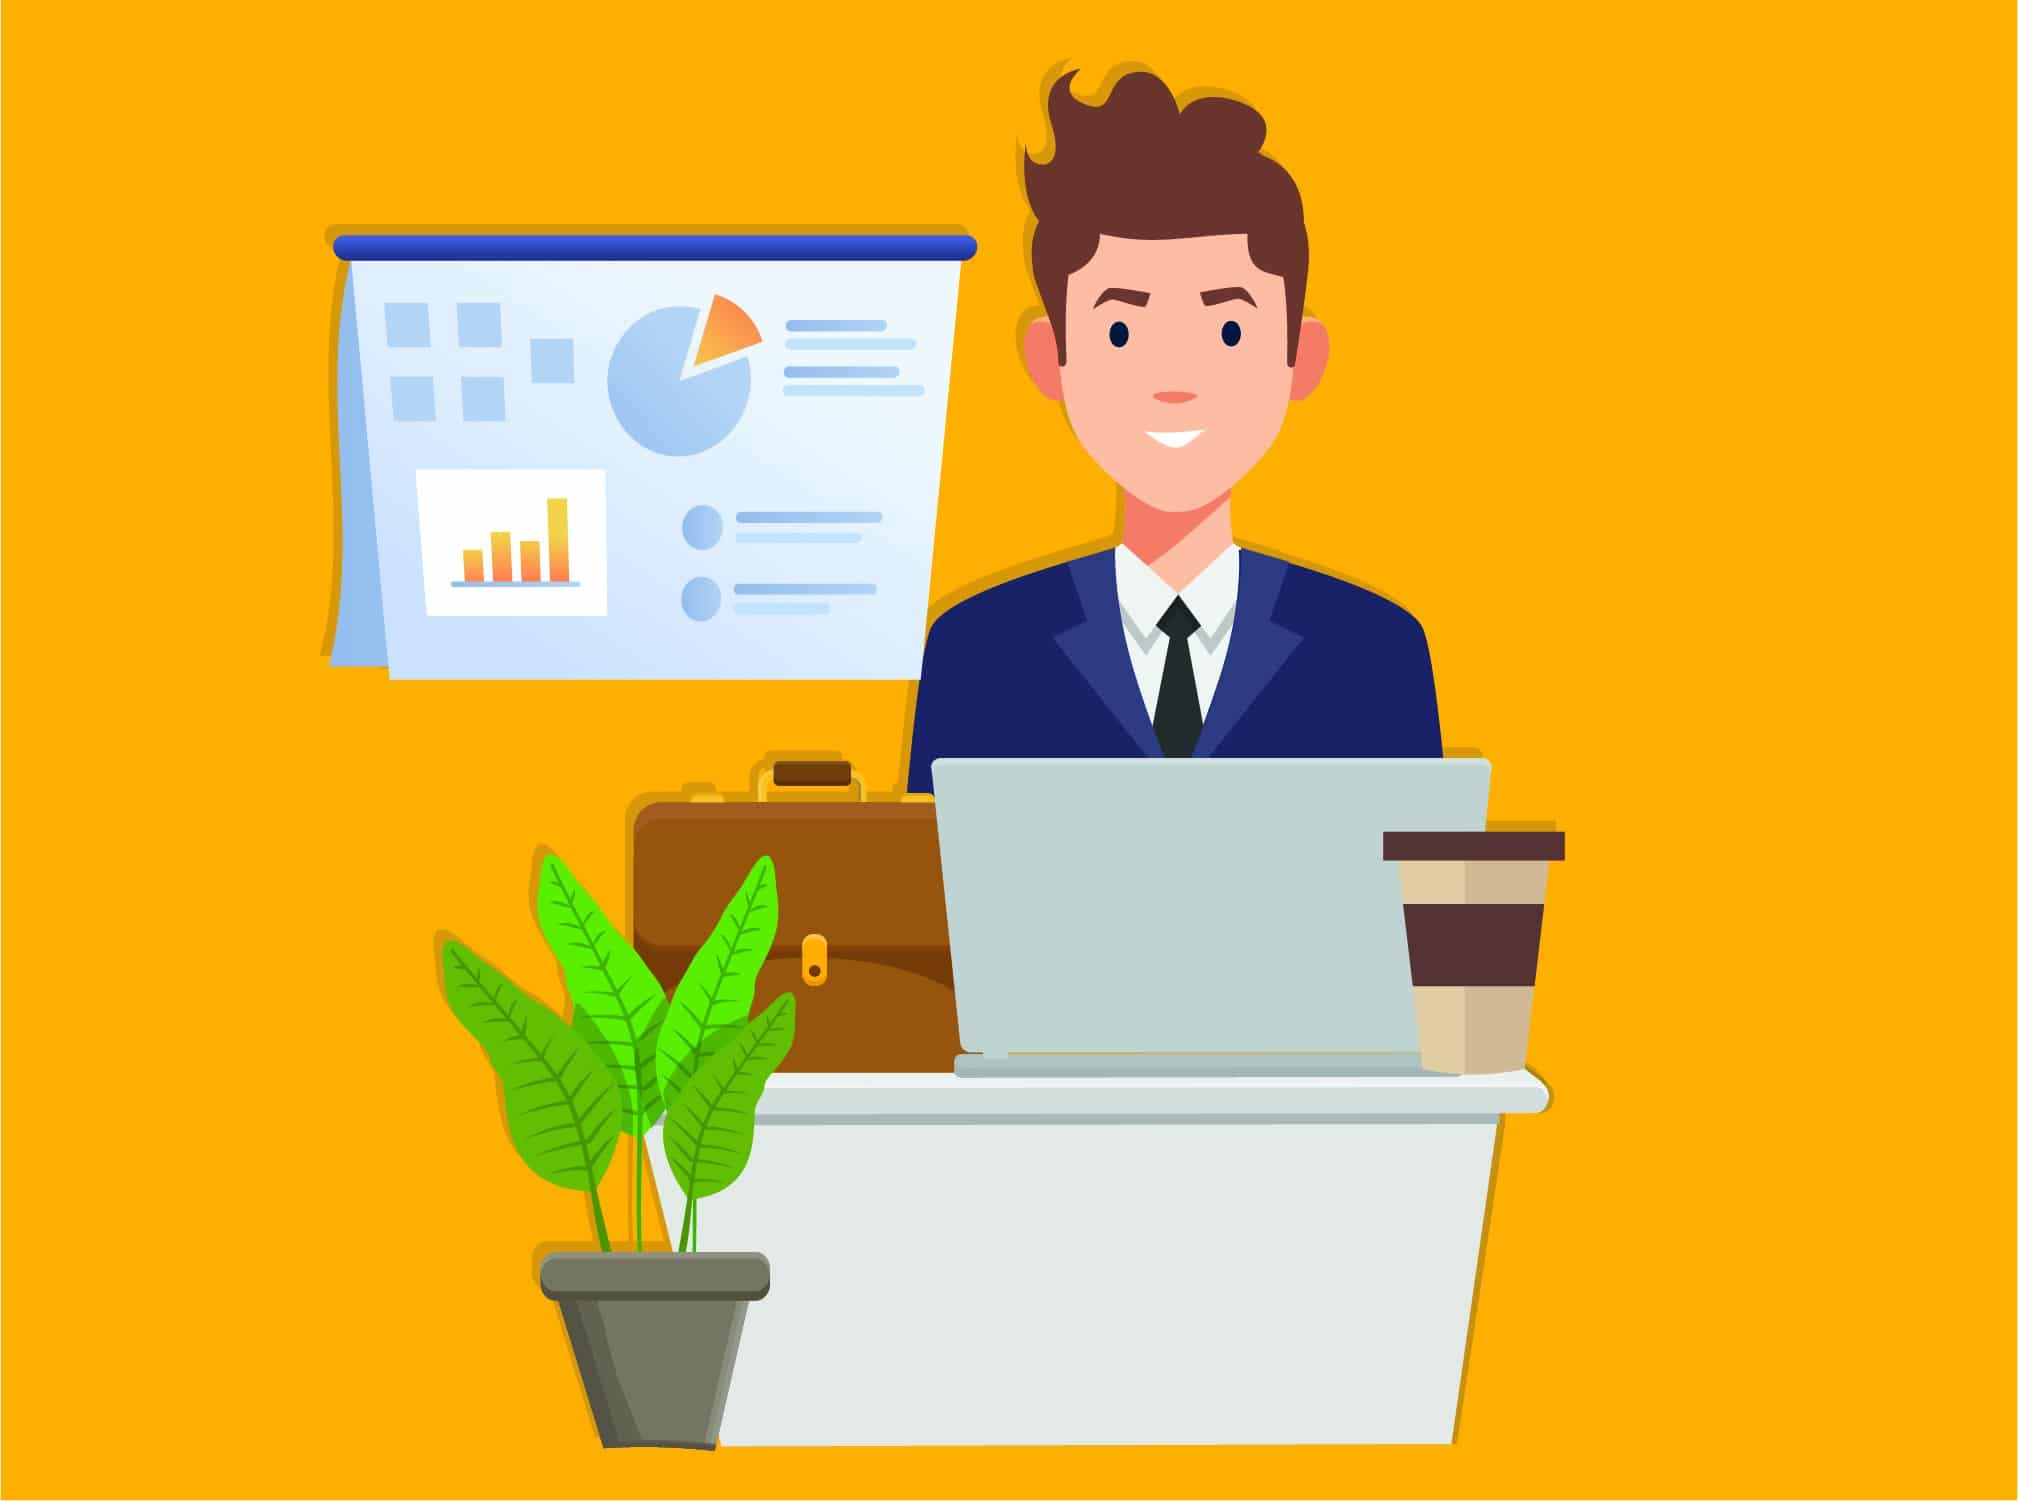 Graphic with businessman working at a desk